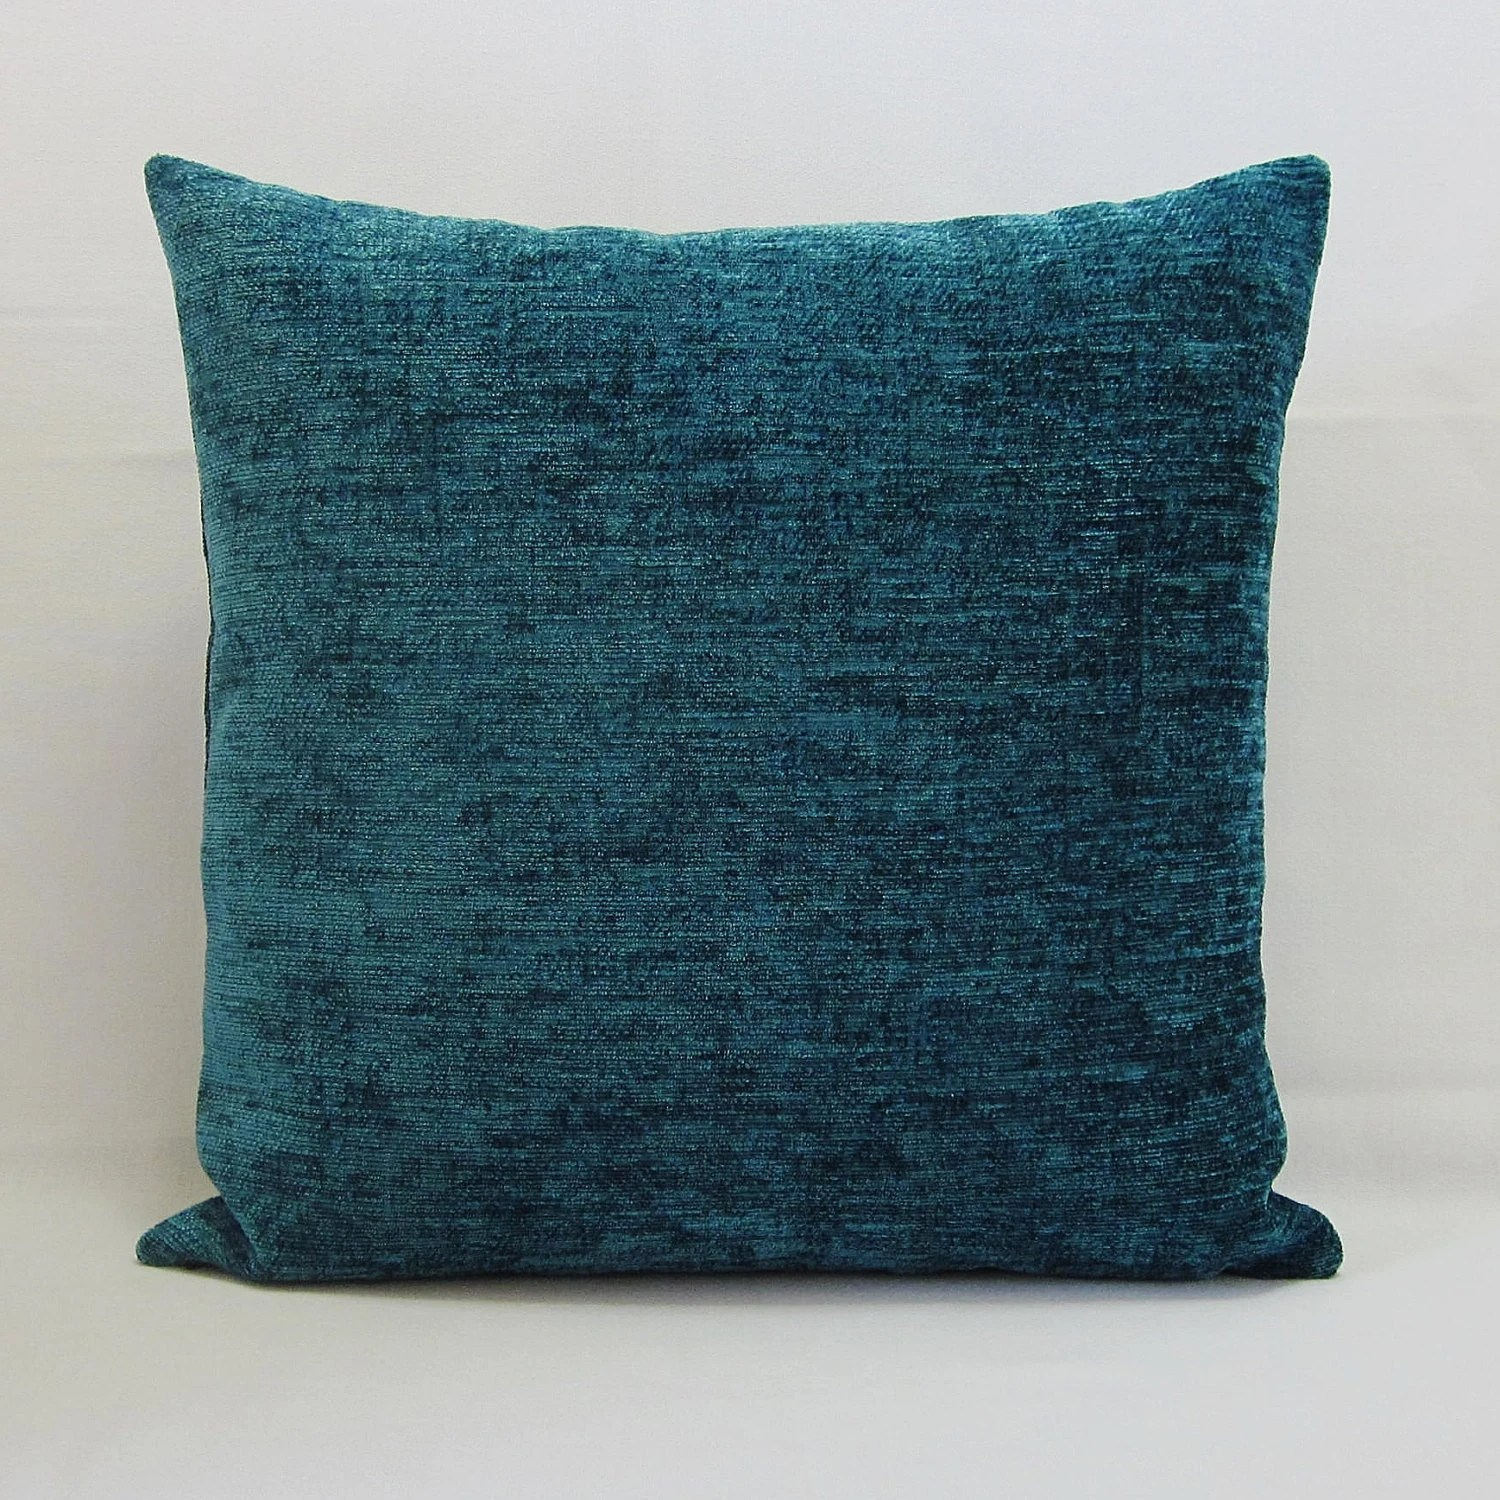 Teal Blue Throw Pillow Cover Decorative Accent Toss Couch